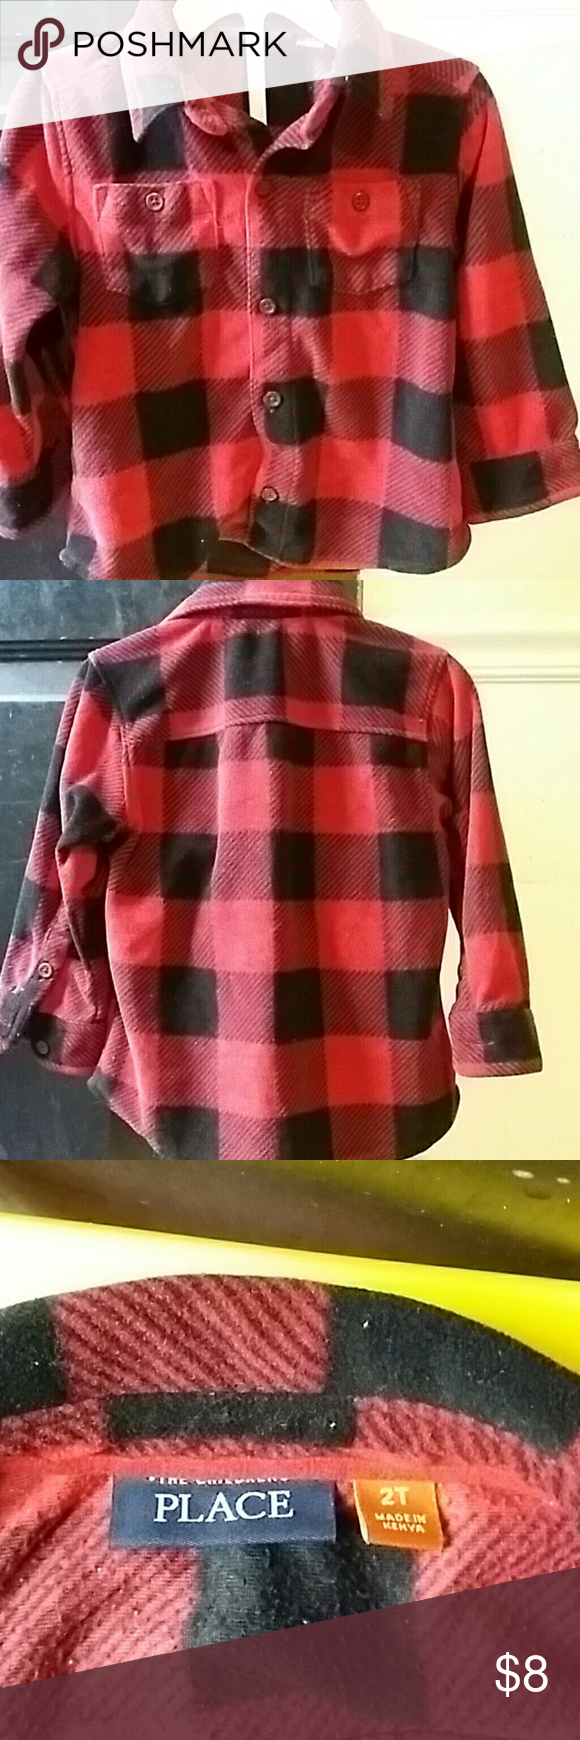 Cute Flannel Shirt 100 Polyester Shirt In Polyester